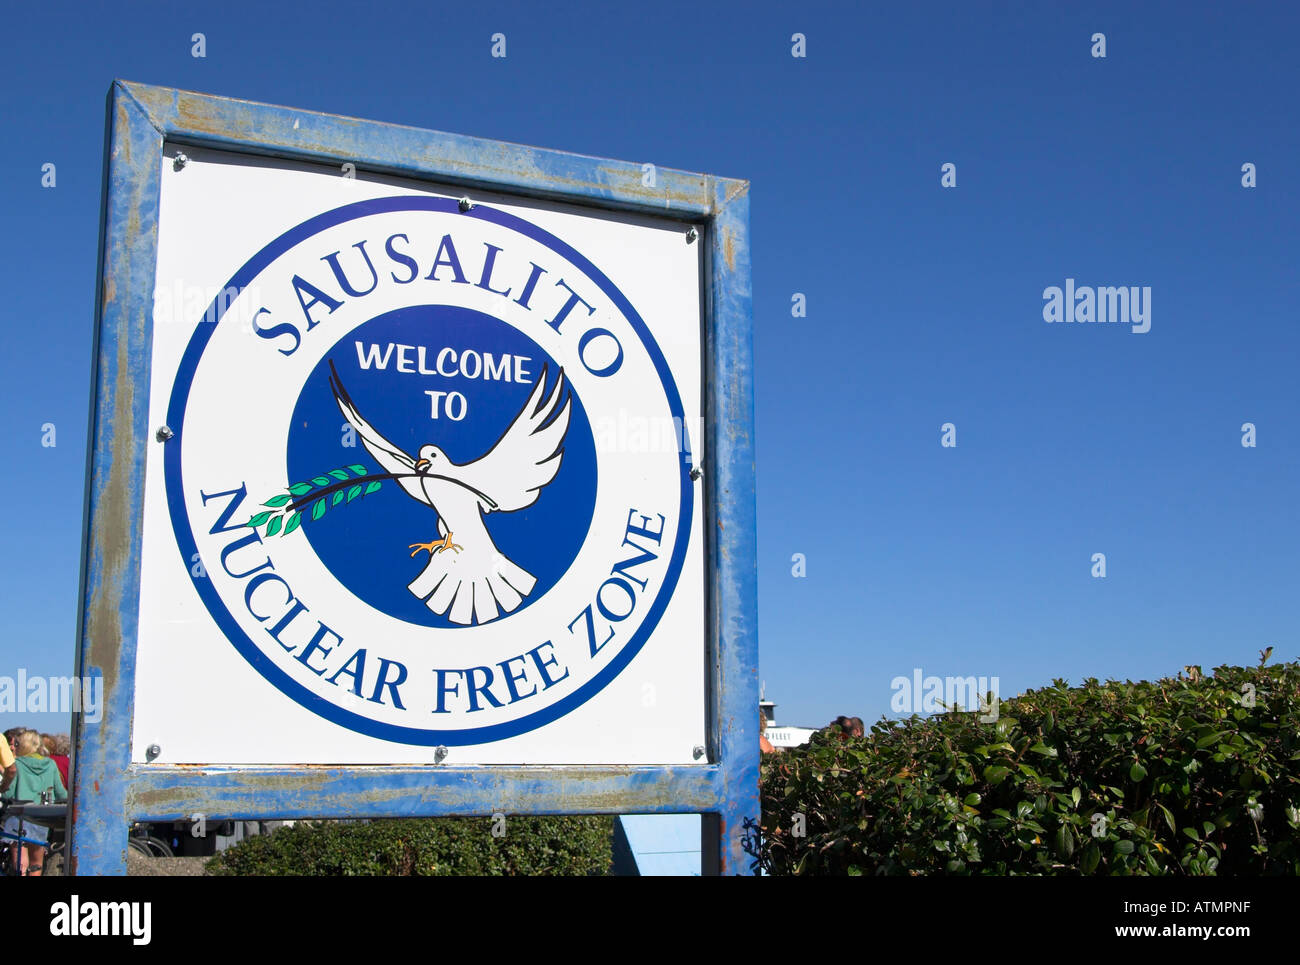 Nuclear Free Zone welcome sign in Sausalito, California, USA (Sept 2006) - Stock Image